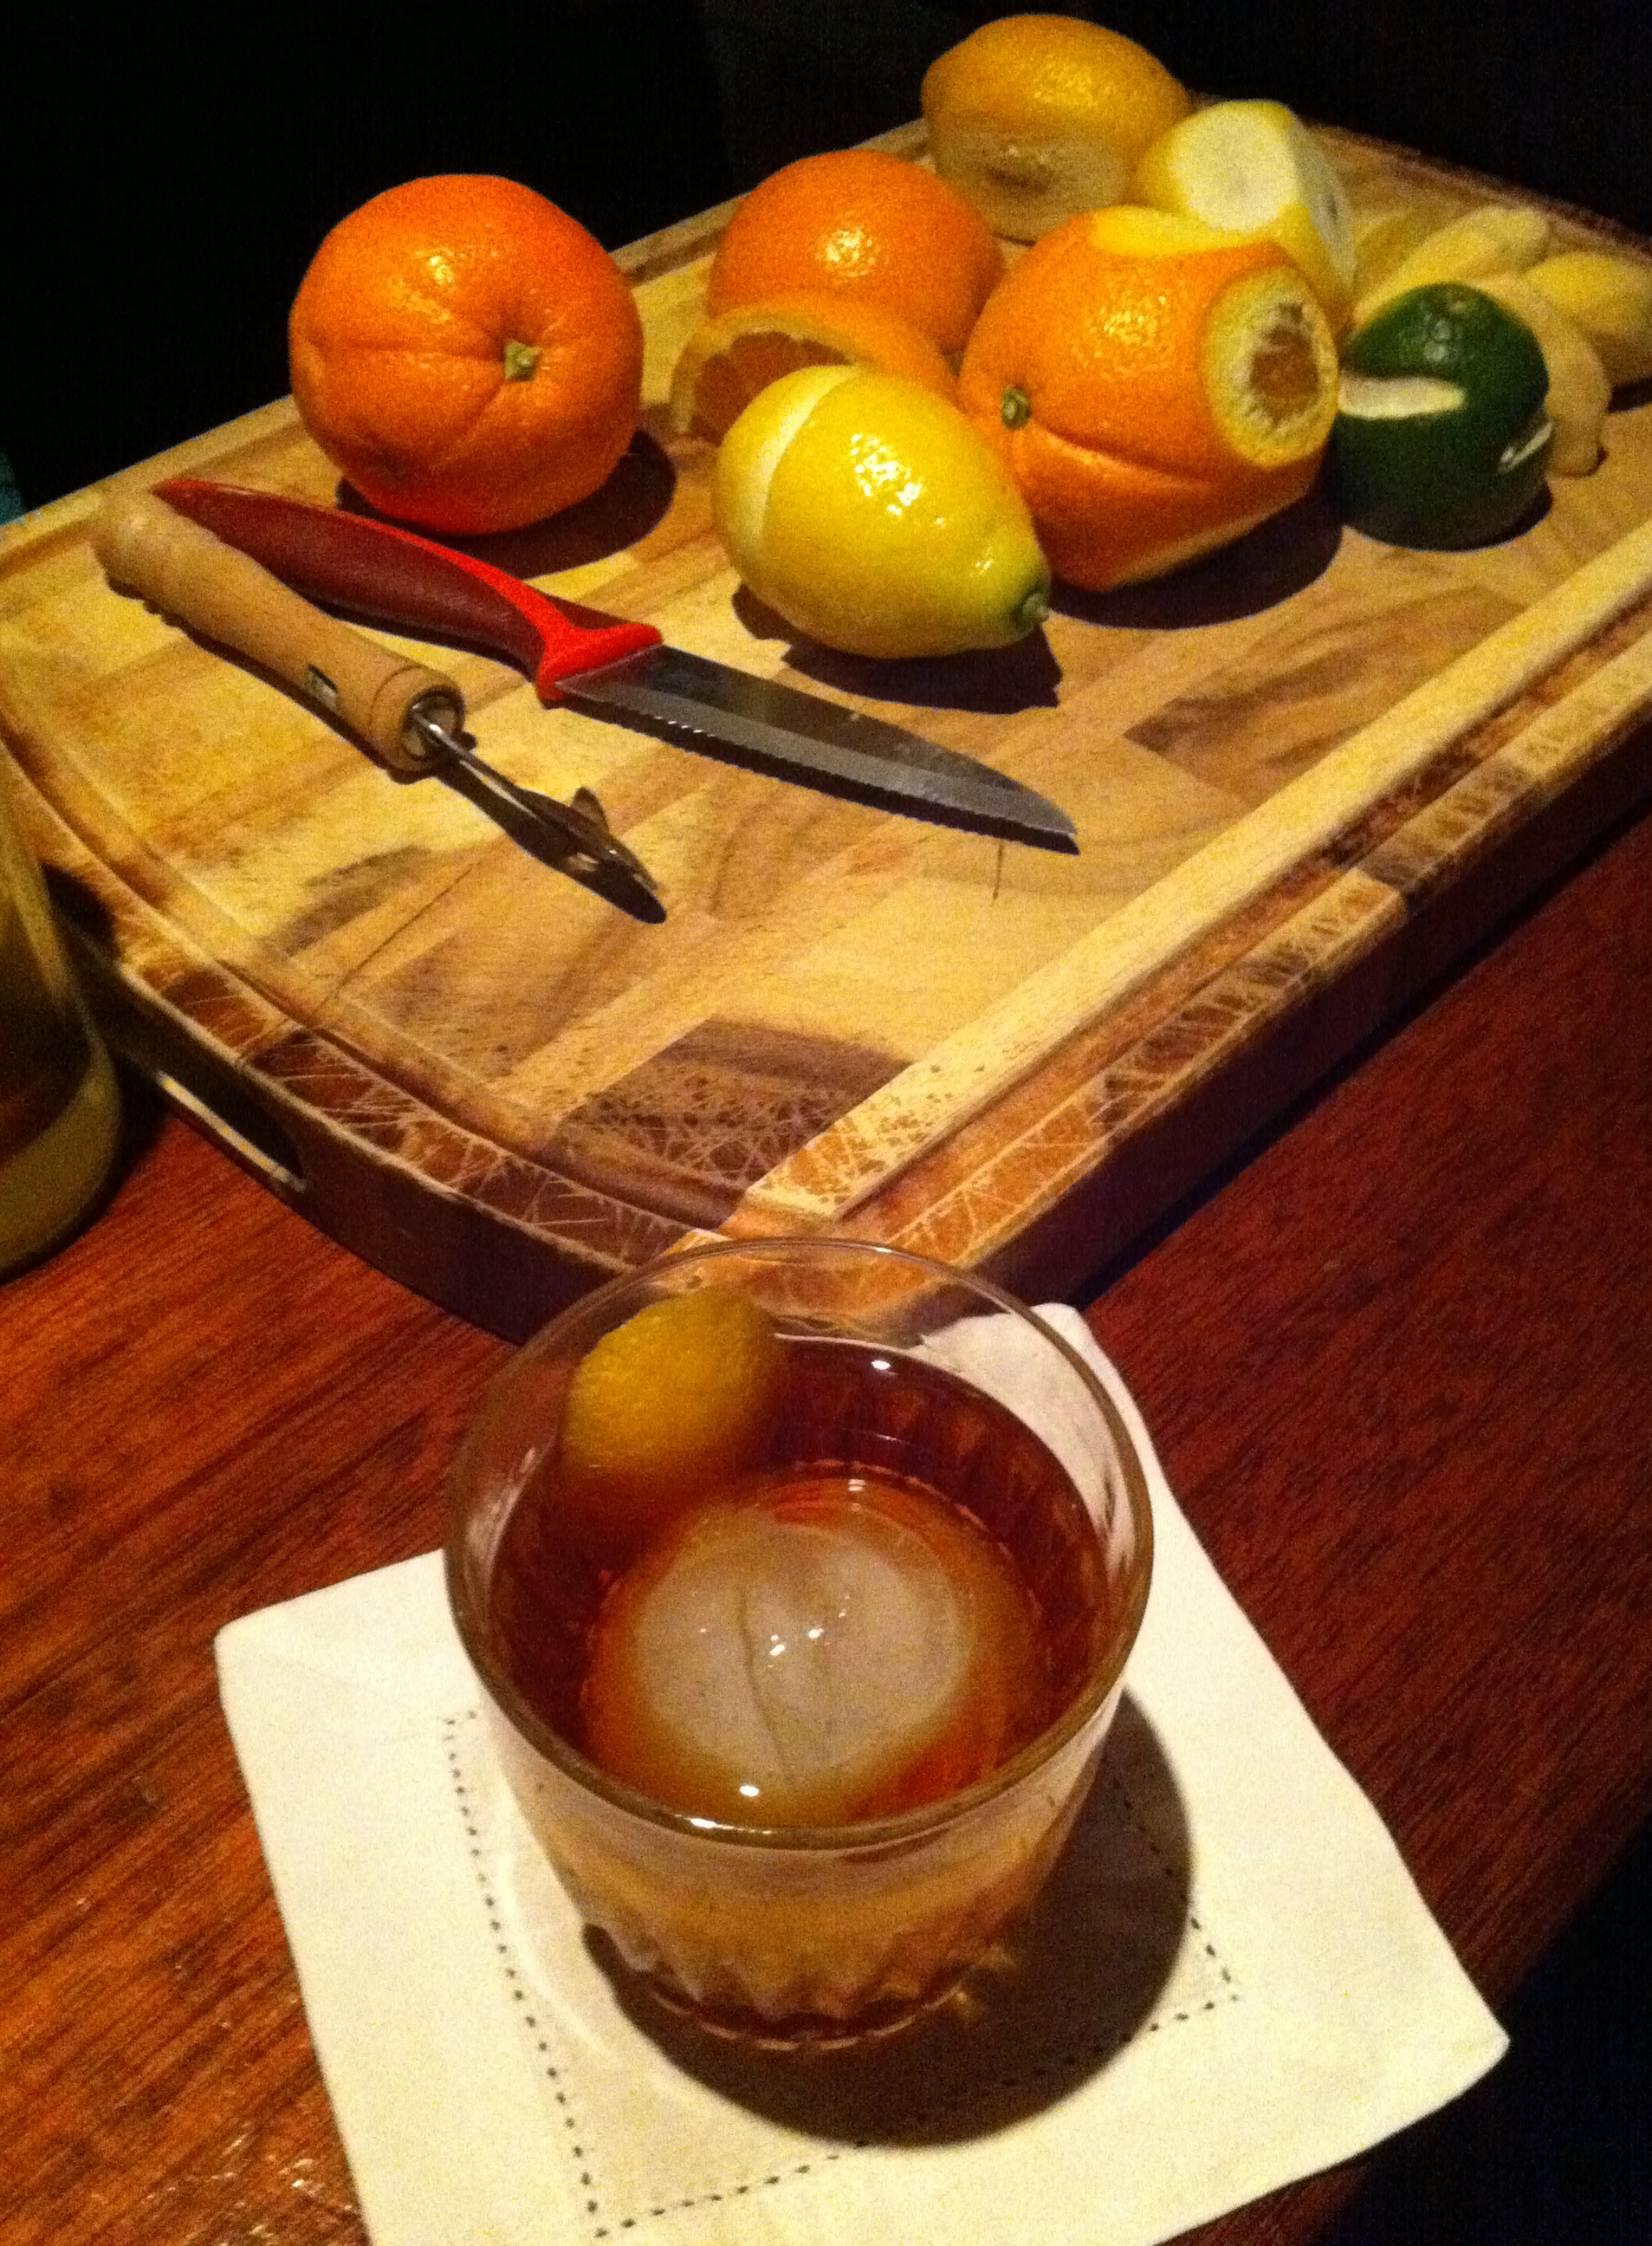 Fixings for a mean old fashioned